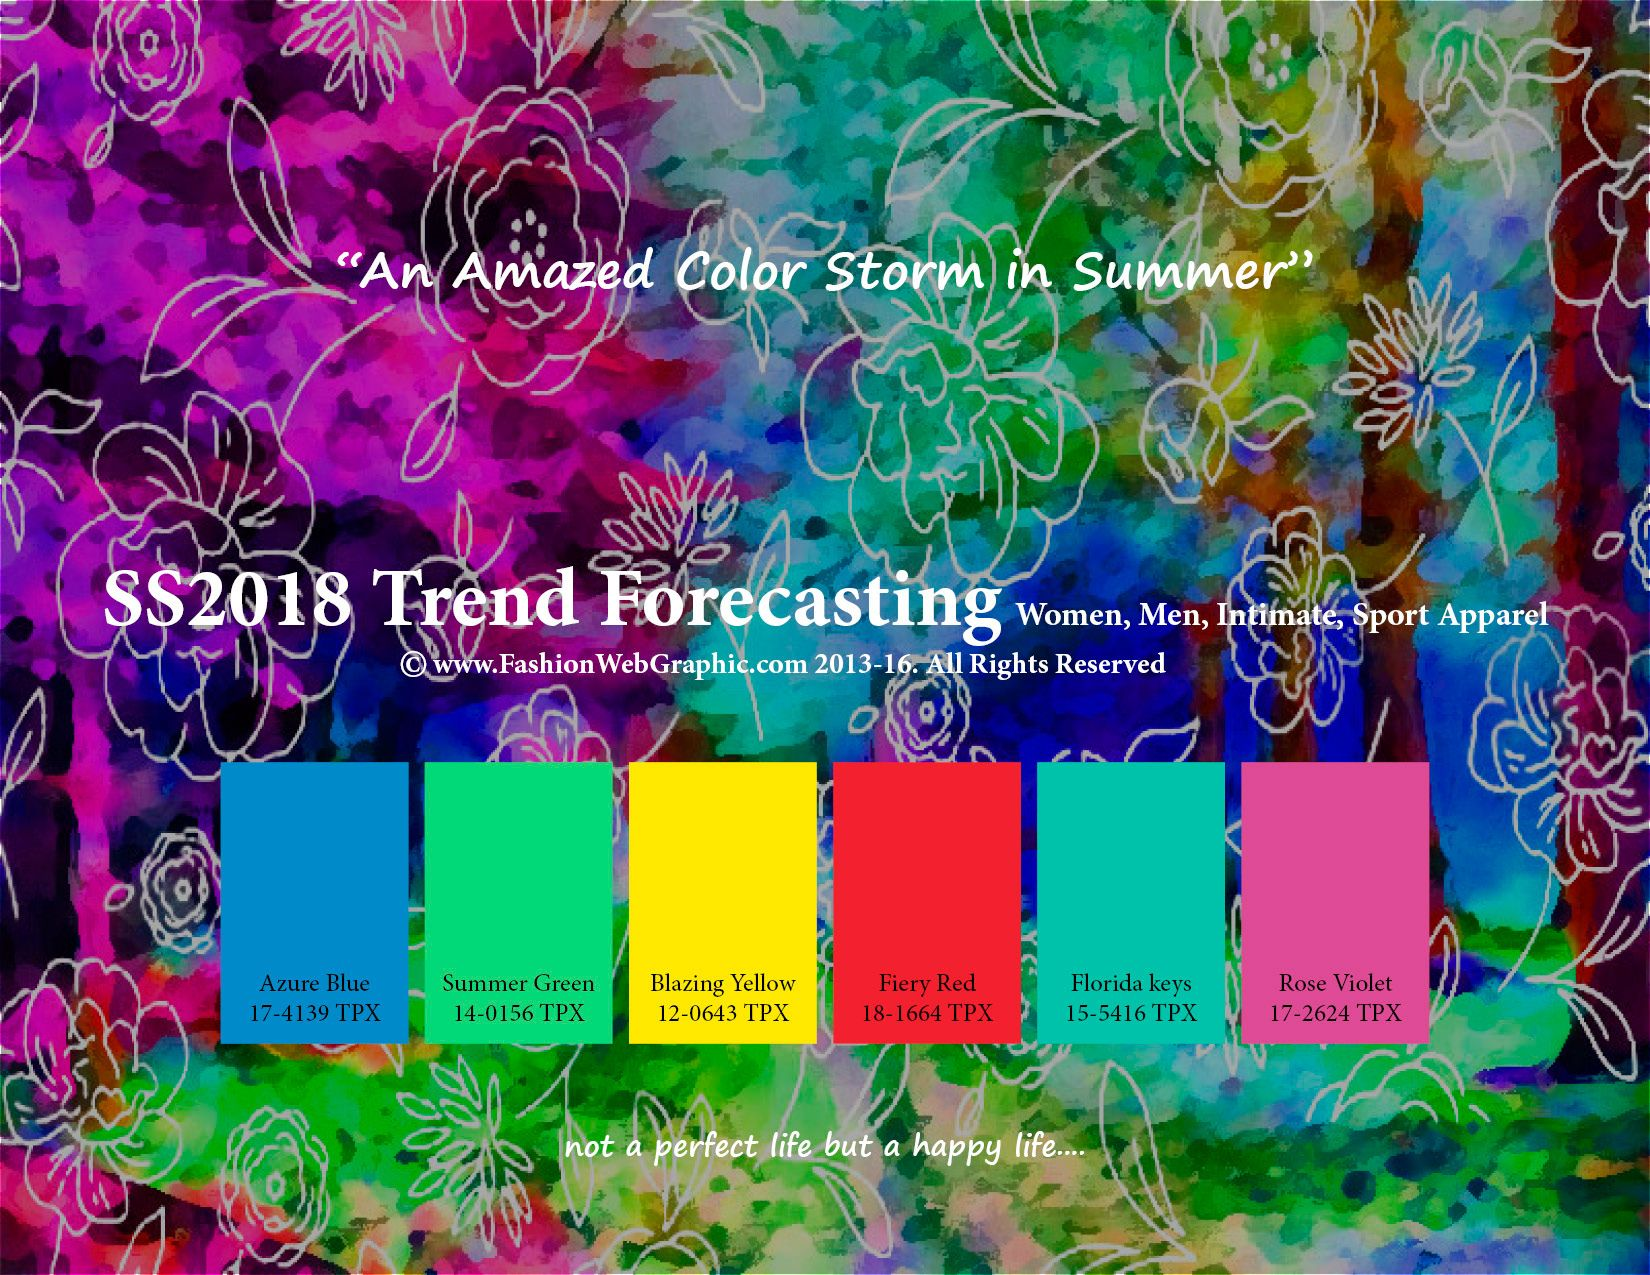 Spring Summer 2018 Trend Forecasting Is A Color Guide That Offer Seasonal Inspiration And Key Direction For Women Men S Fashion